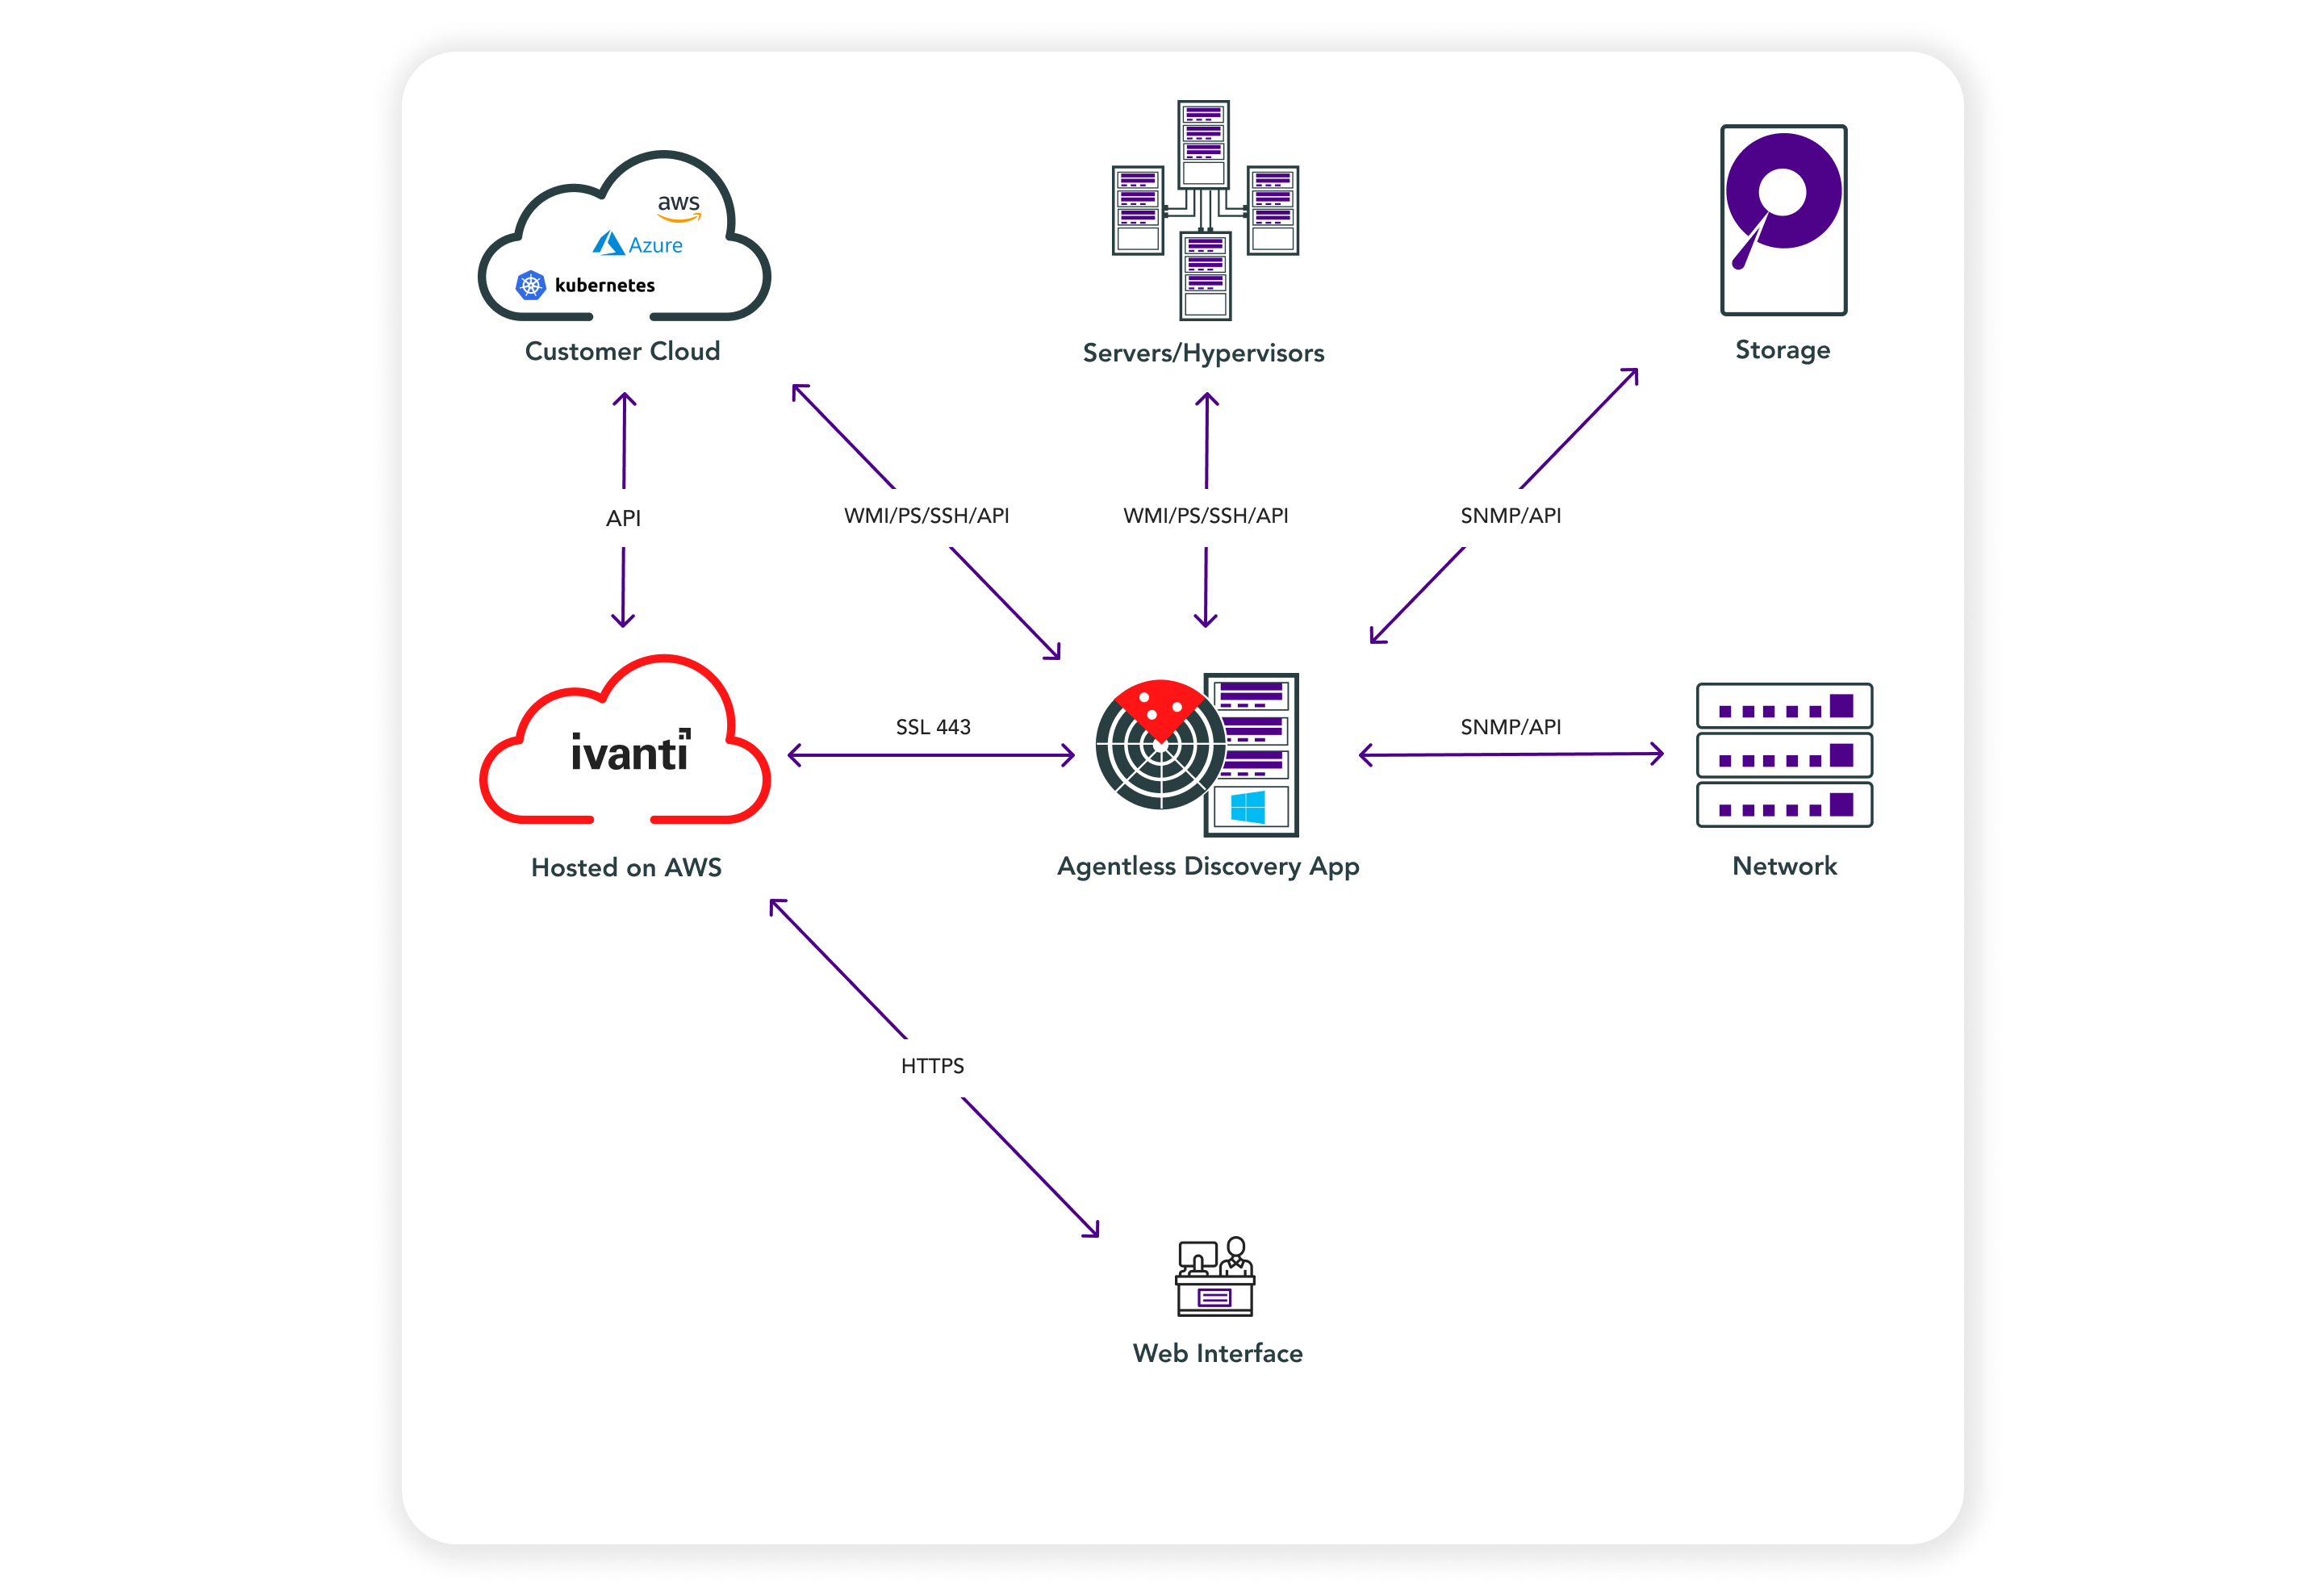 Agentless discovery for all data center and cloud assets